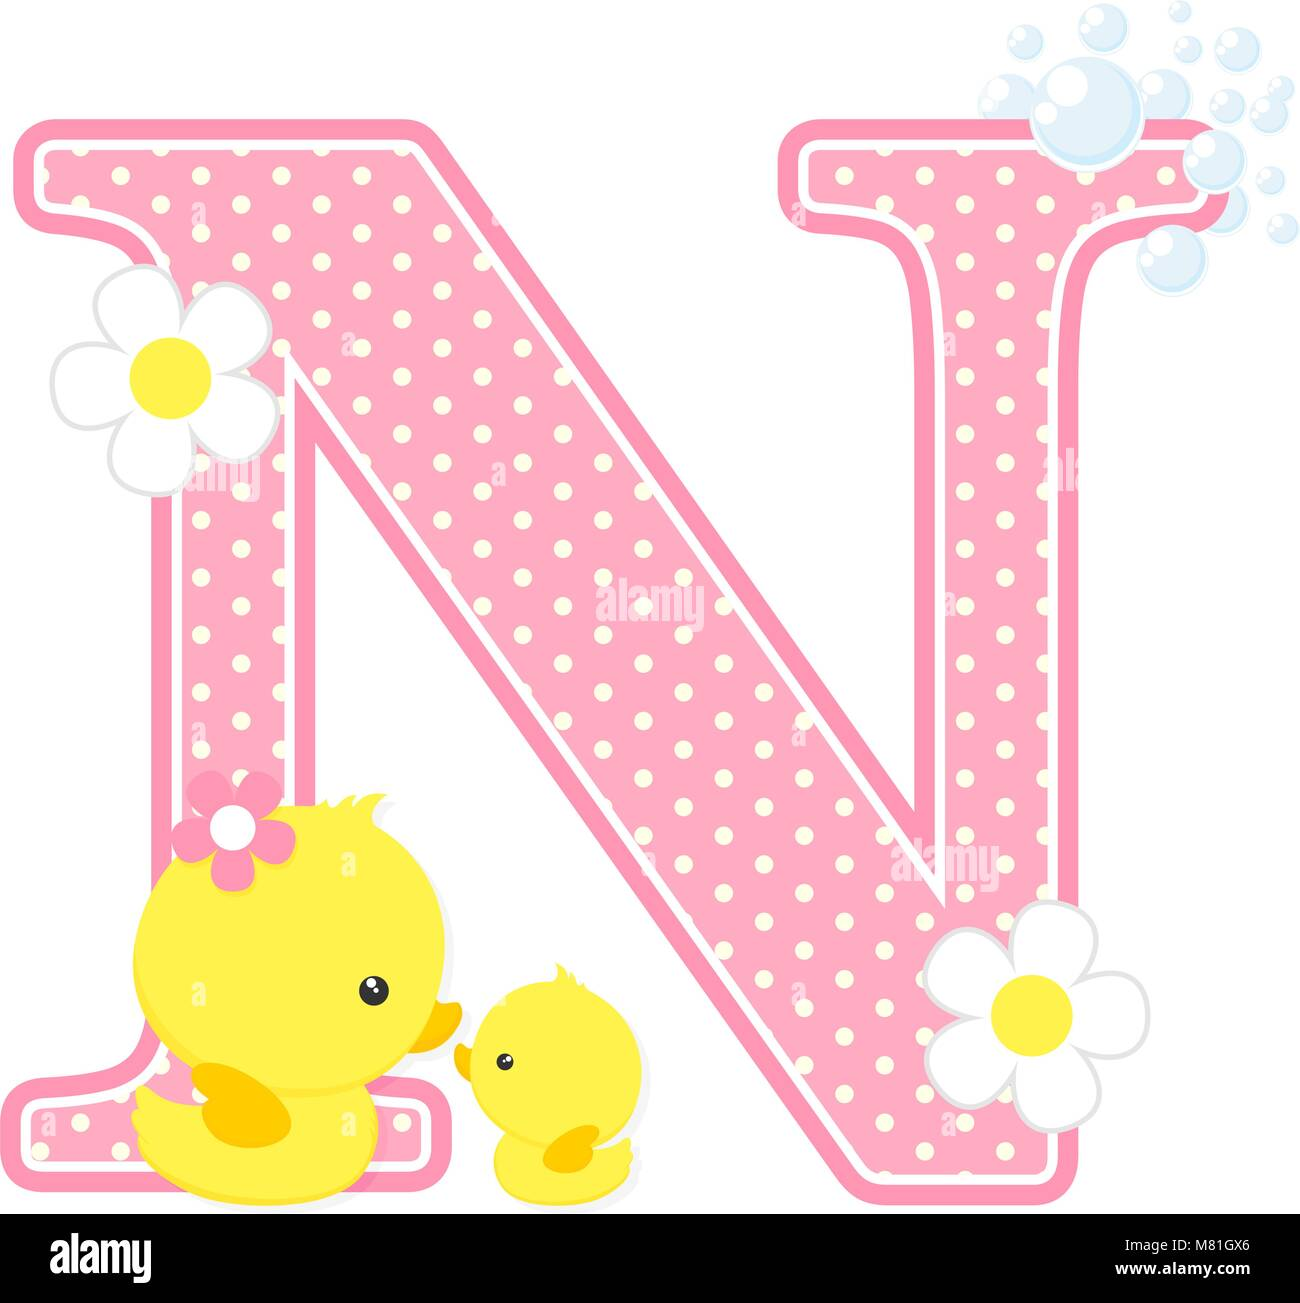 Cartoon Letter N Stock Vector Images - Alamy